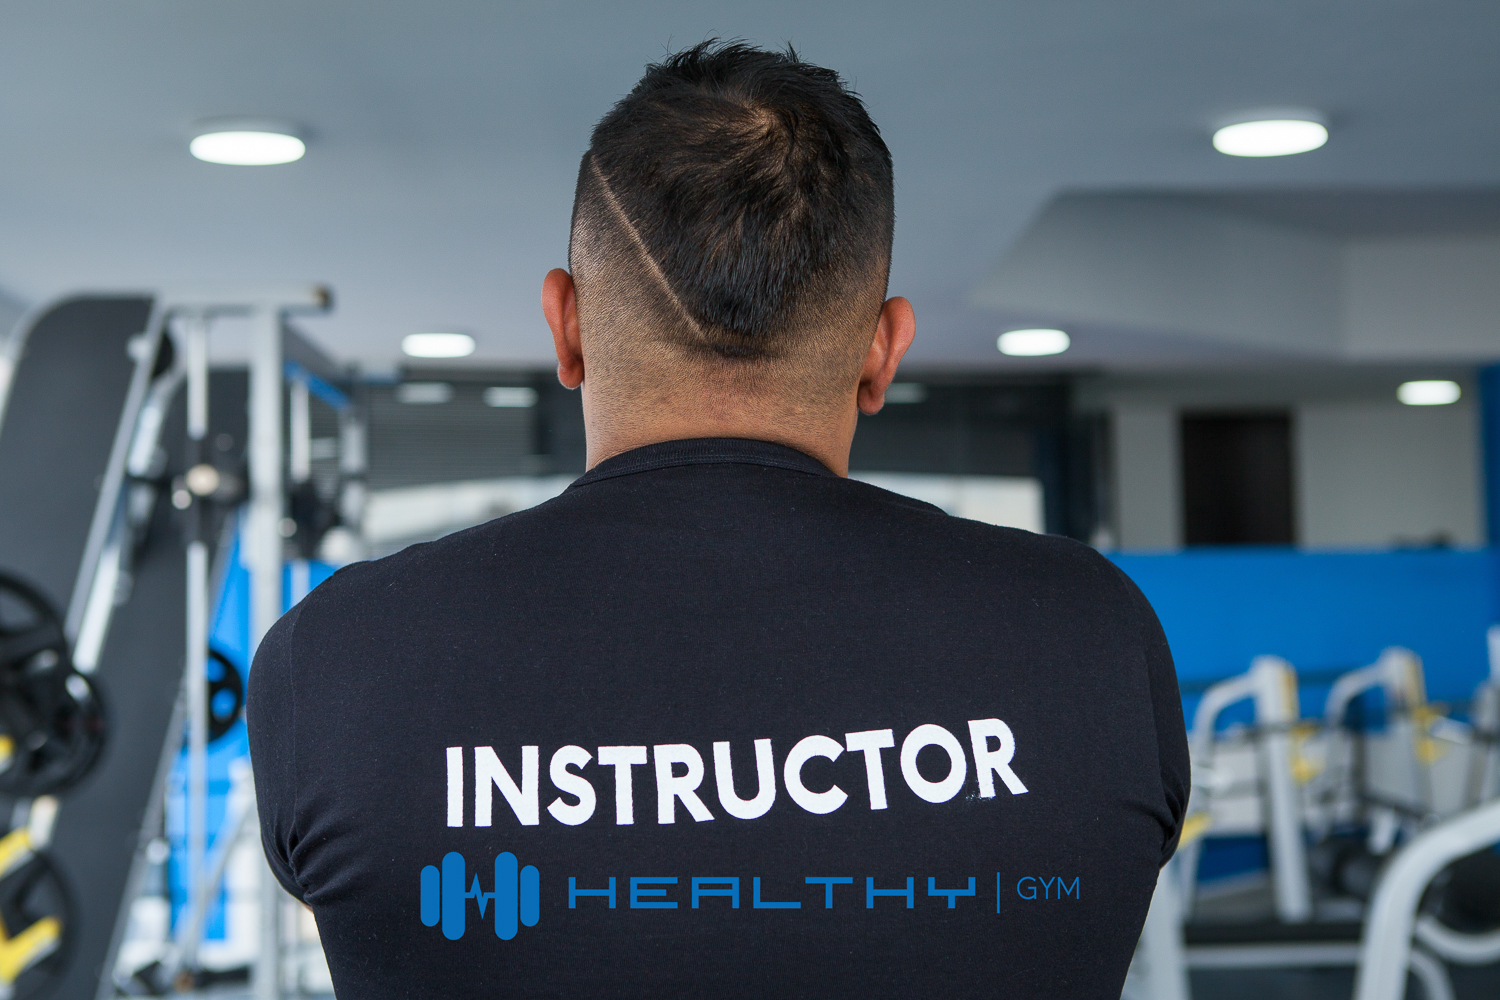 Healthy Gym Instructor